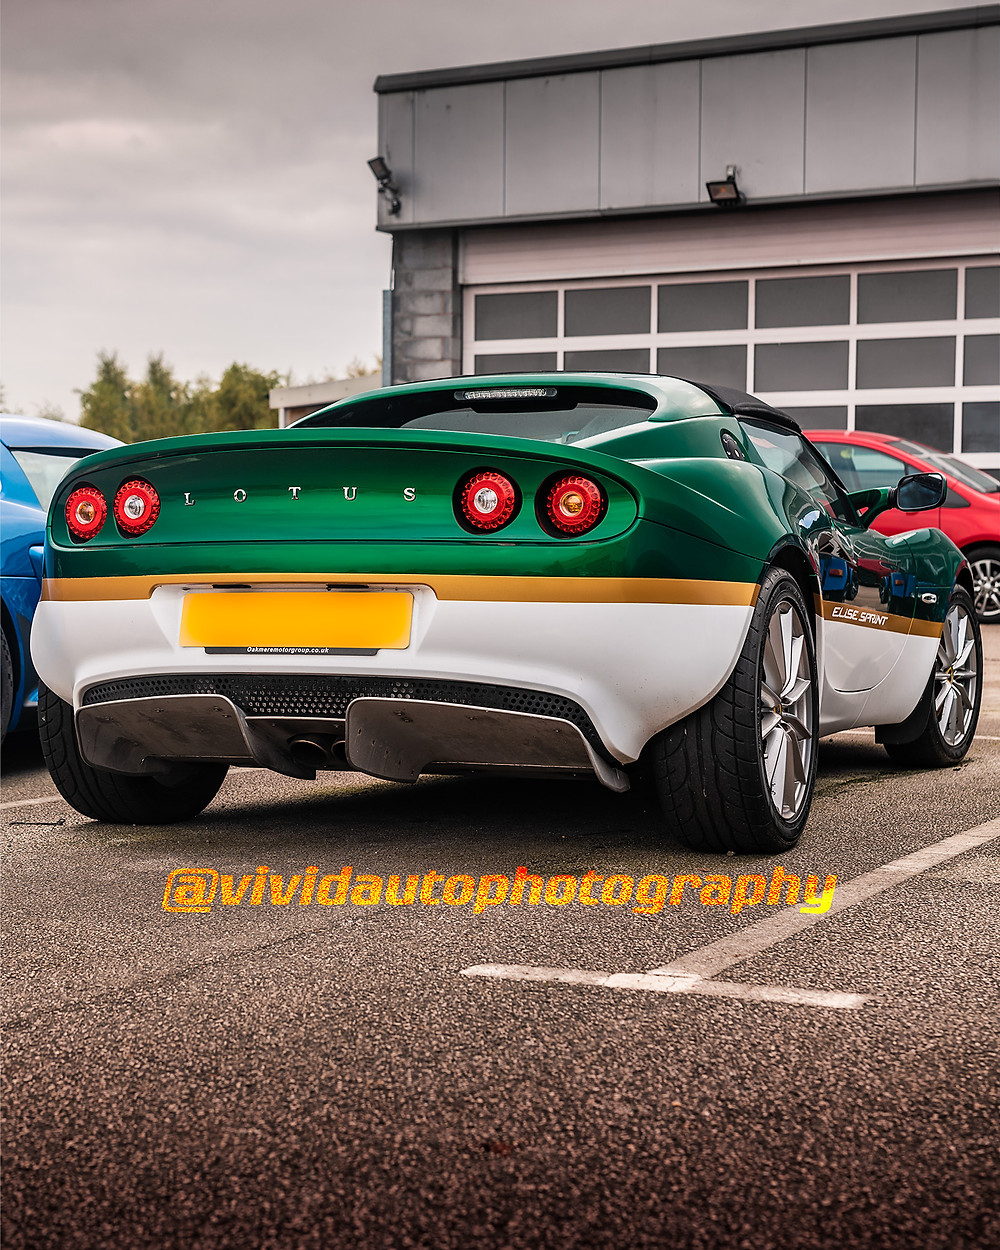 Lotus Elise Sprint | British Racing Green | Rear three quarters poster